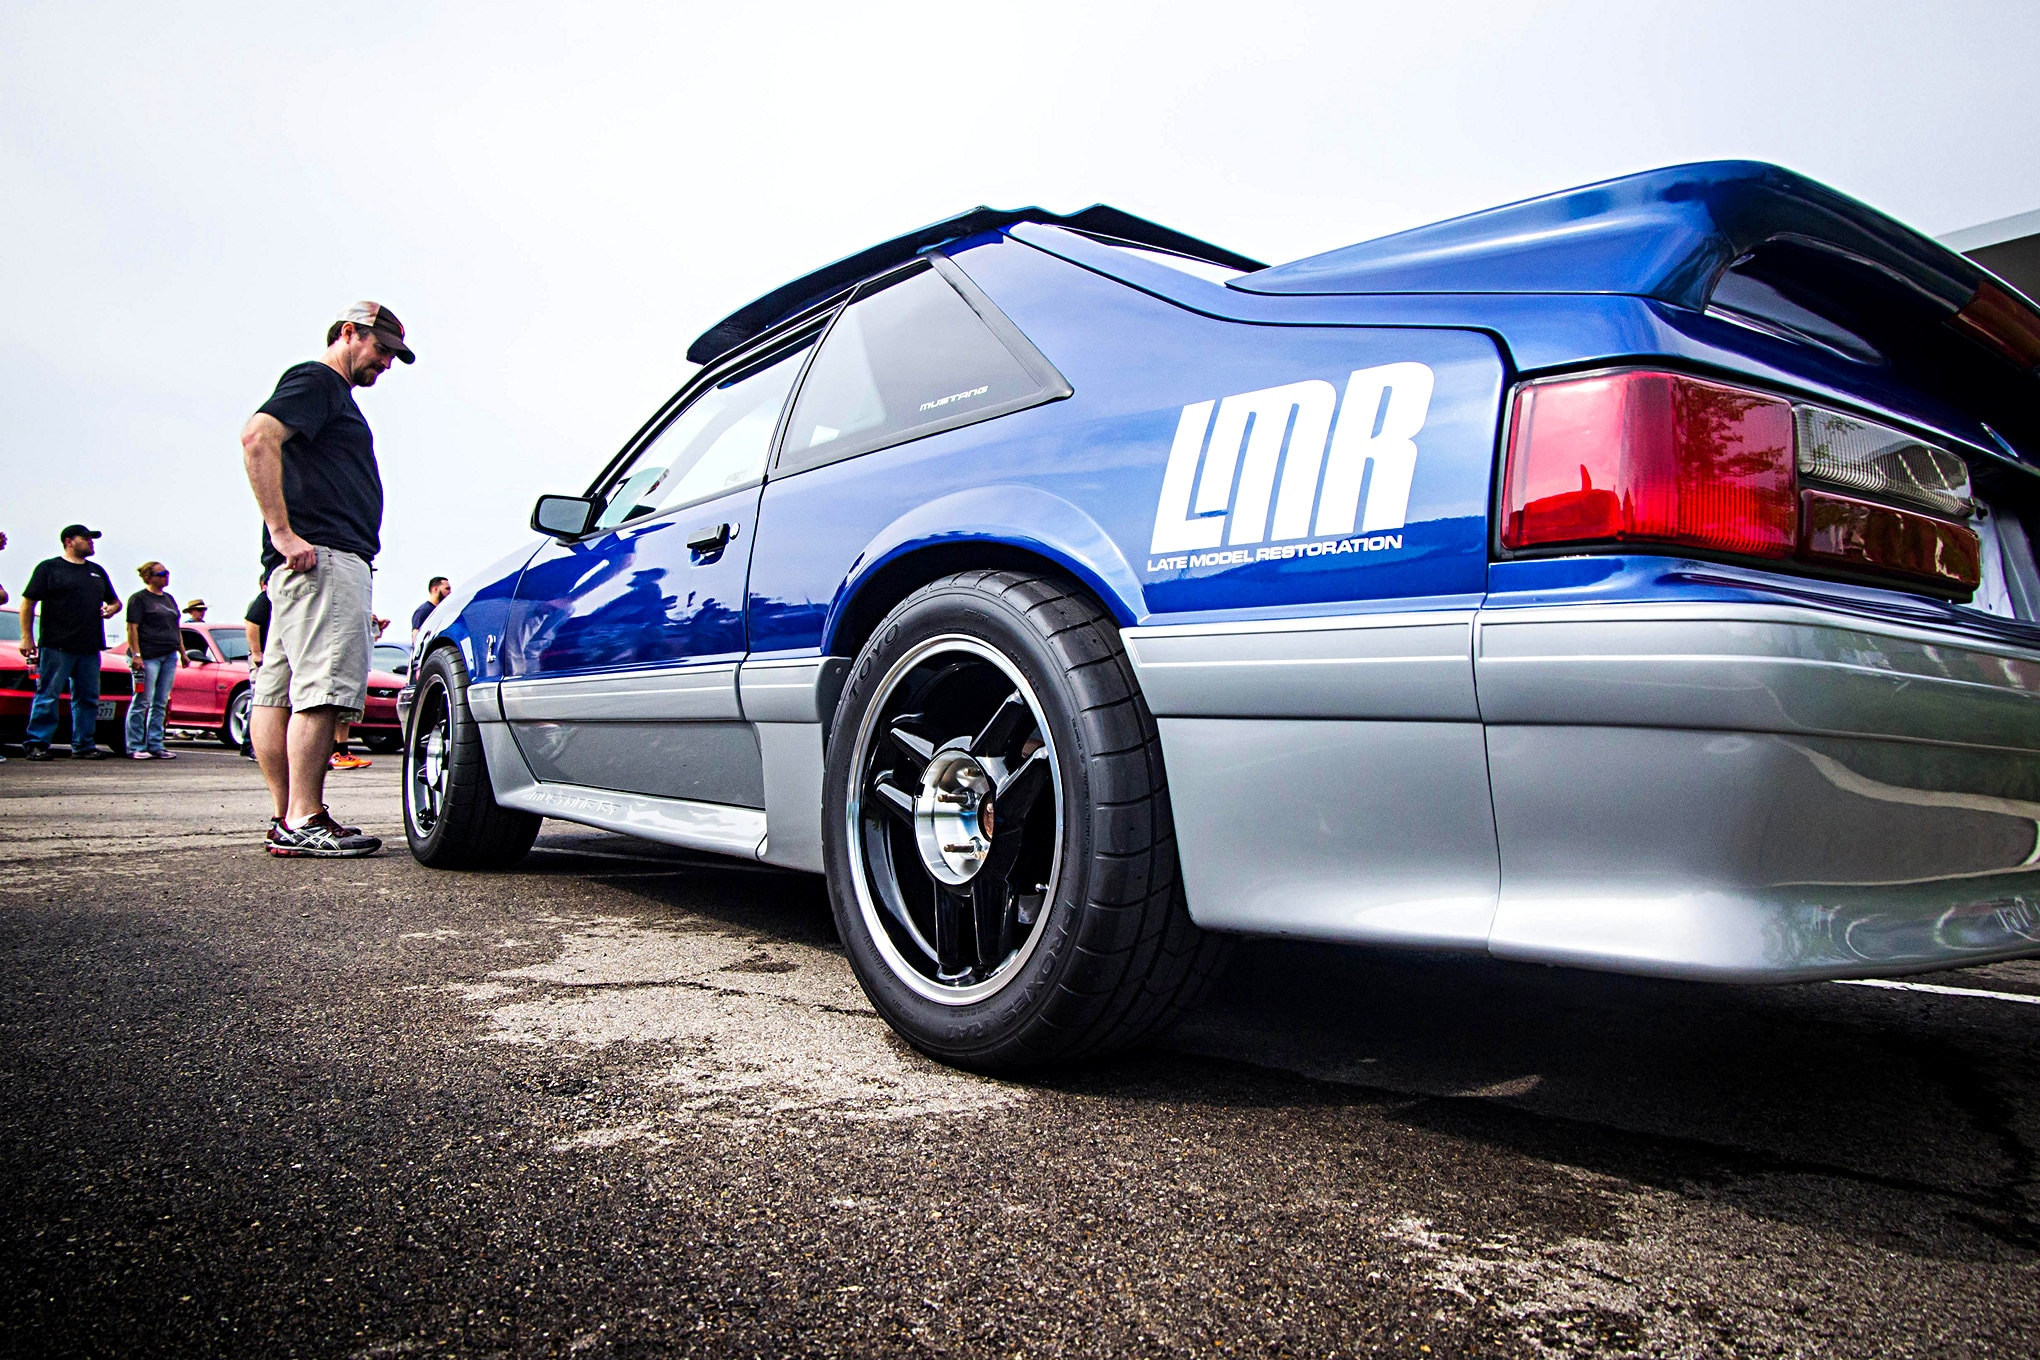 LMR Hosts a Monster Event At This Year's Cruise In!